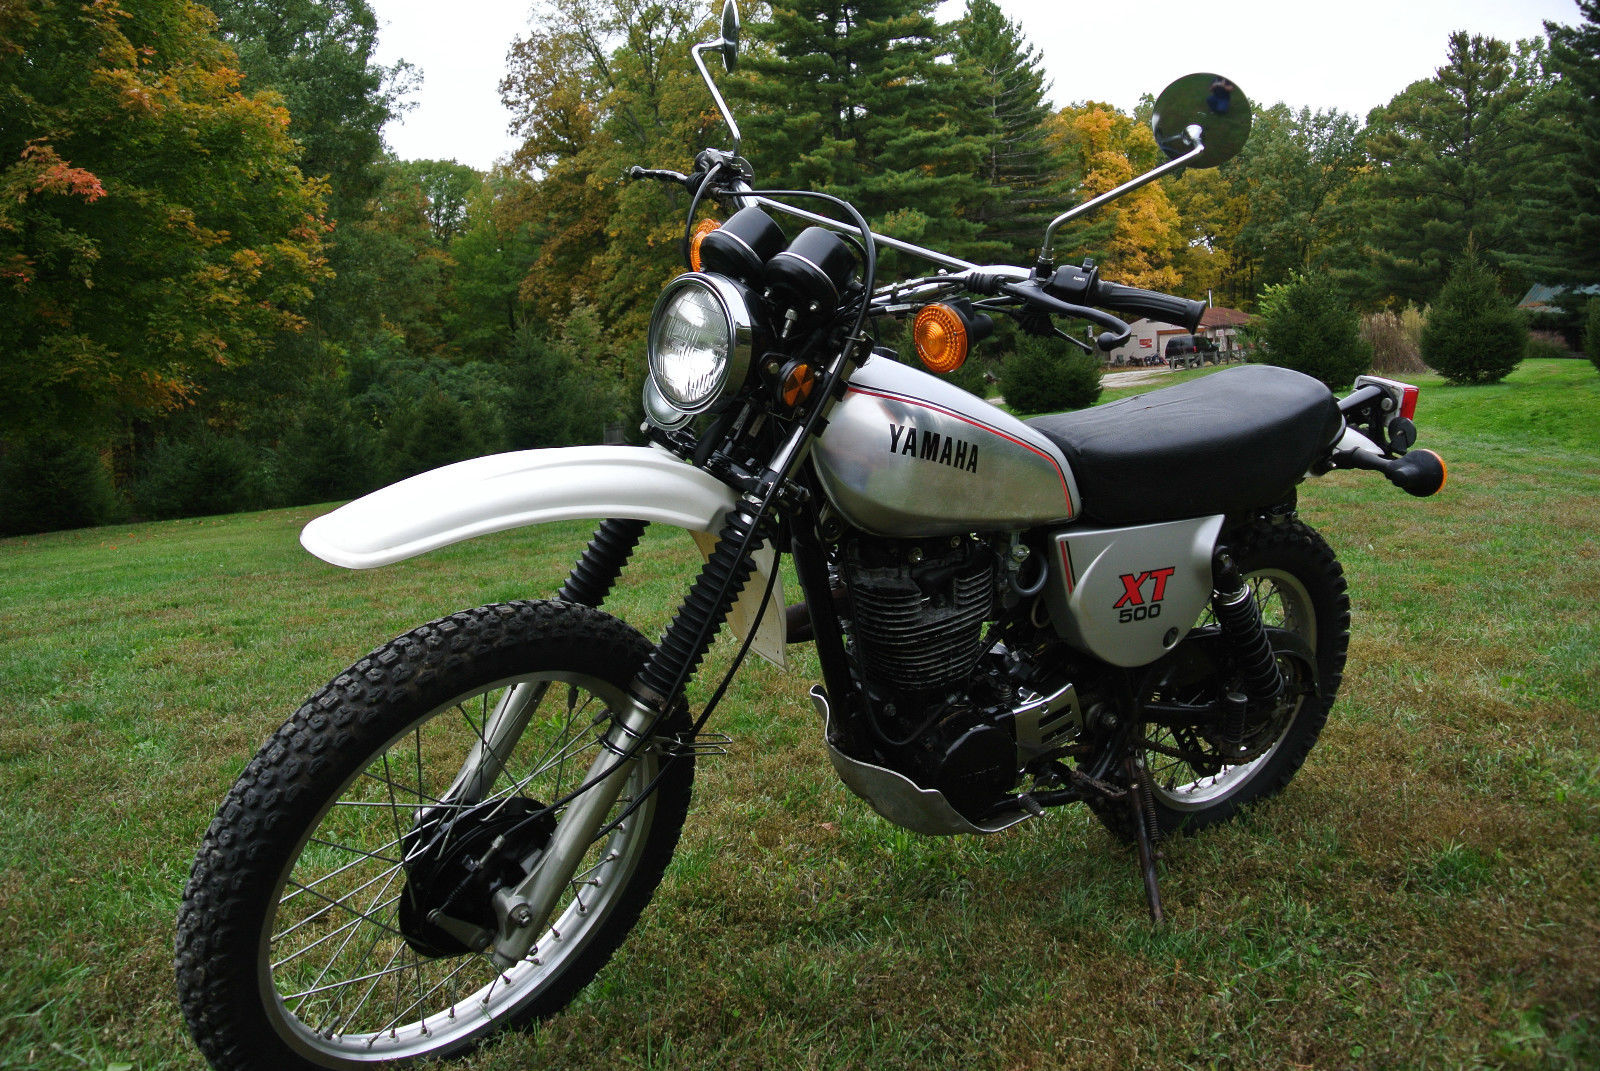 1981 yamaha xt500 enduro nice tt500 cb xt 500 tt500 mx dt it yz no reserve. Black Bedroom Furniture Sets. Home Design Ideas